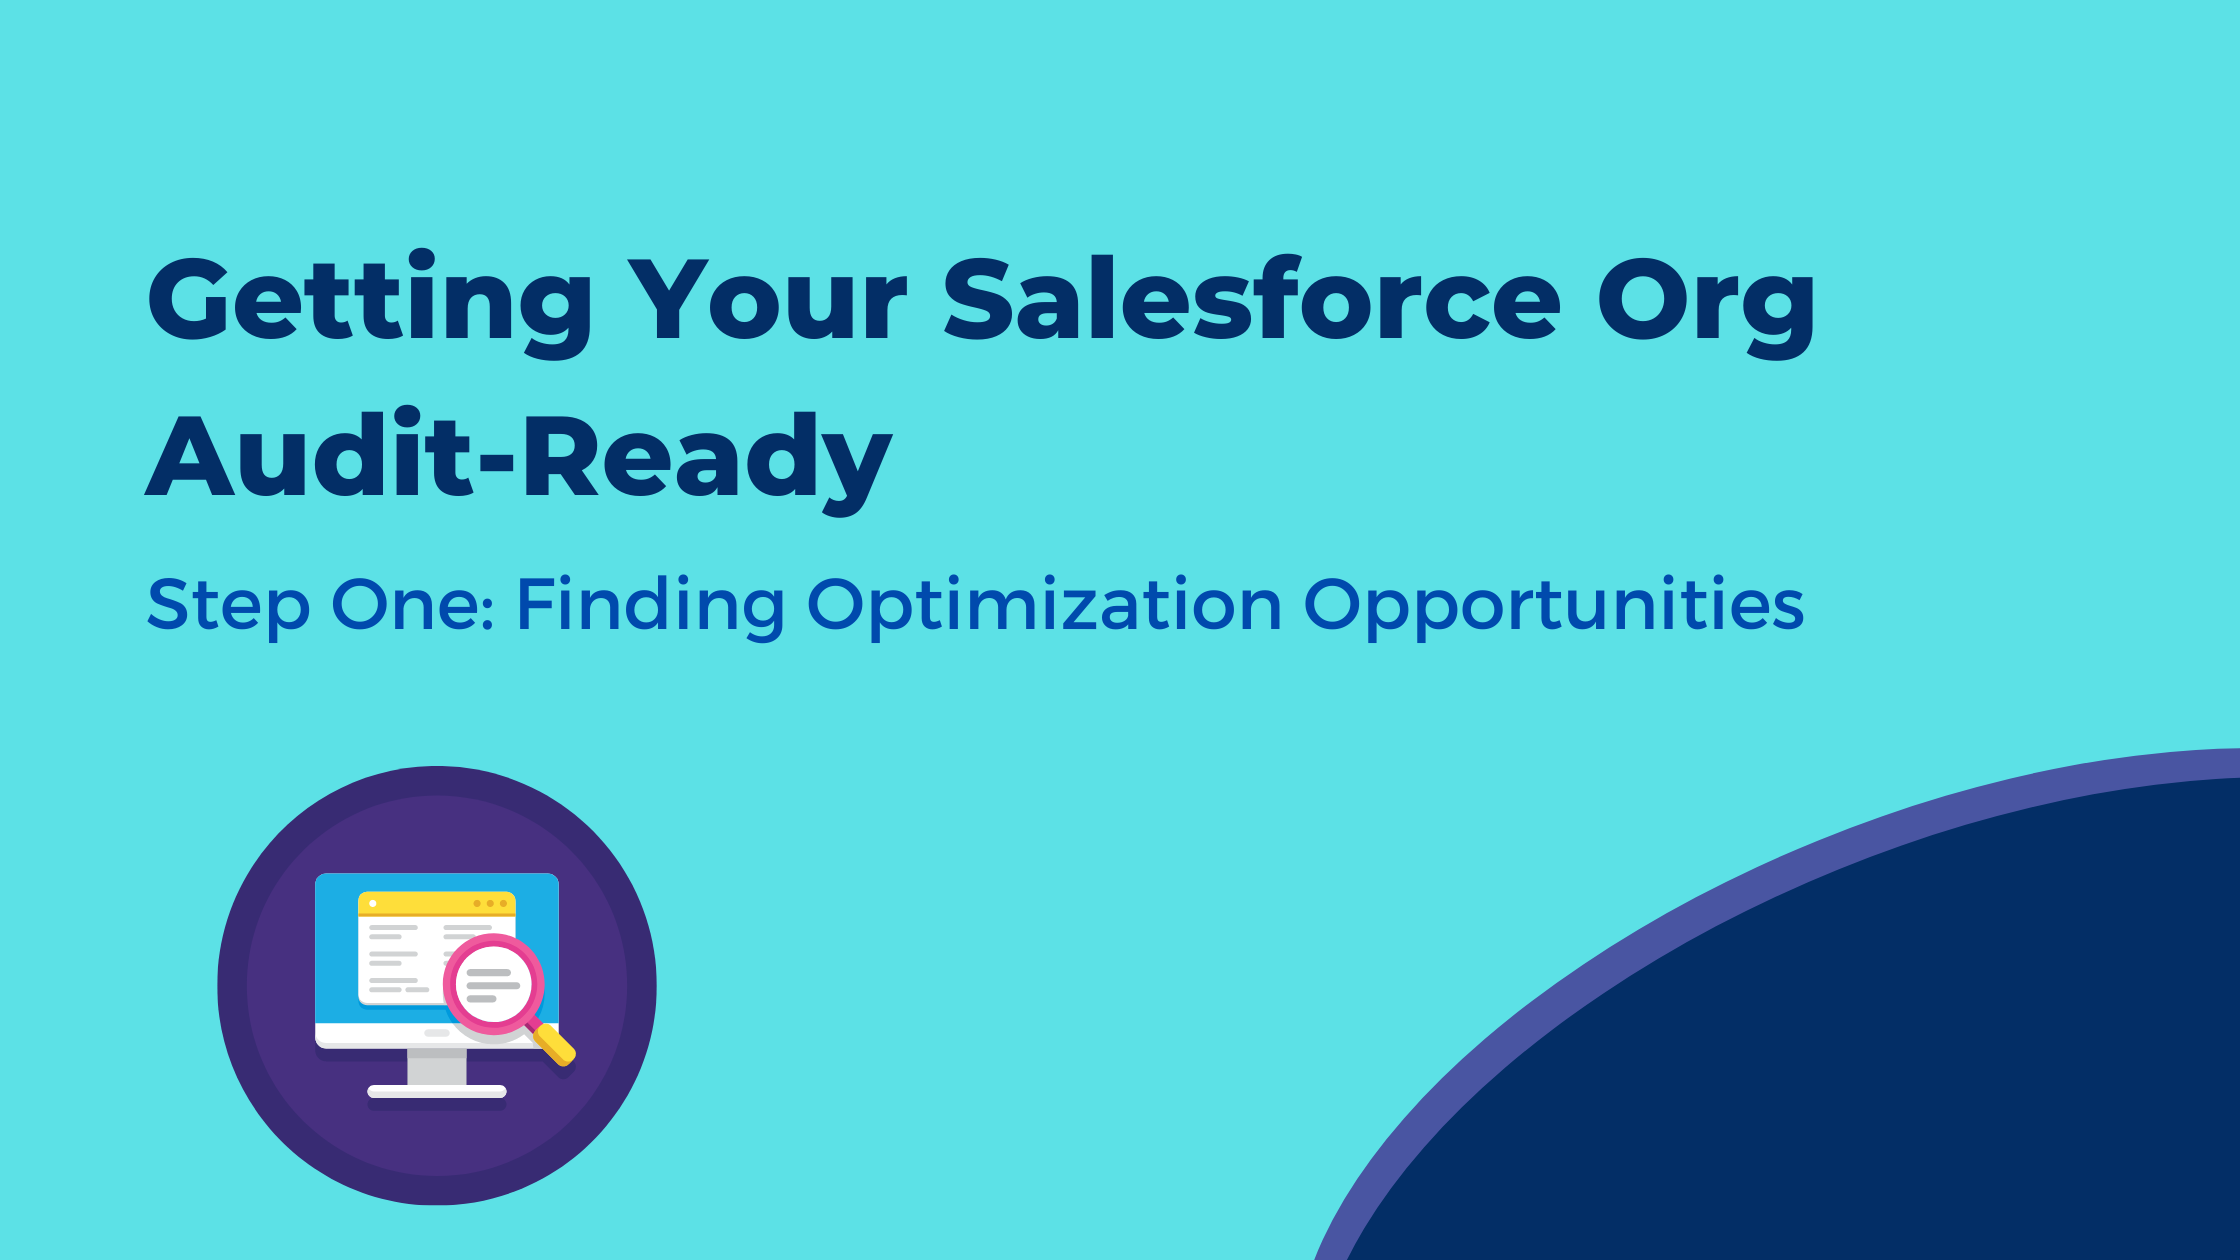 Getting Your Salesforce Org Audit-Ready (1)